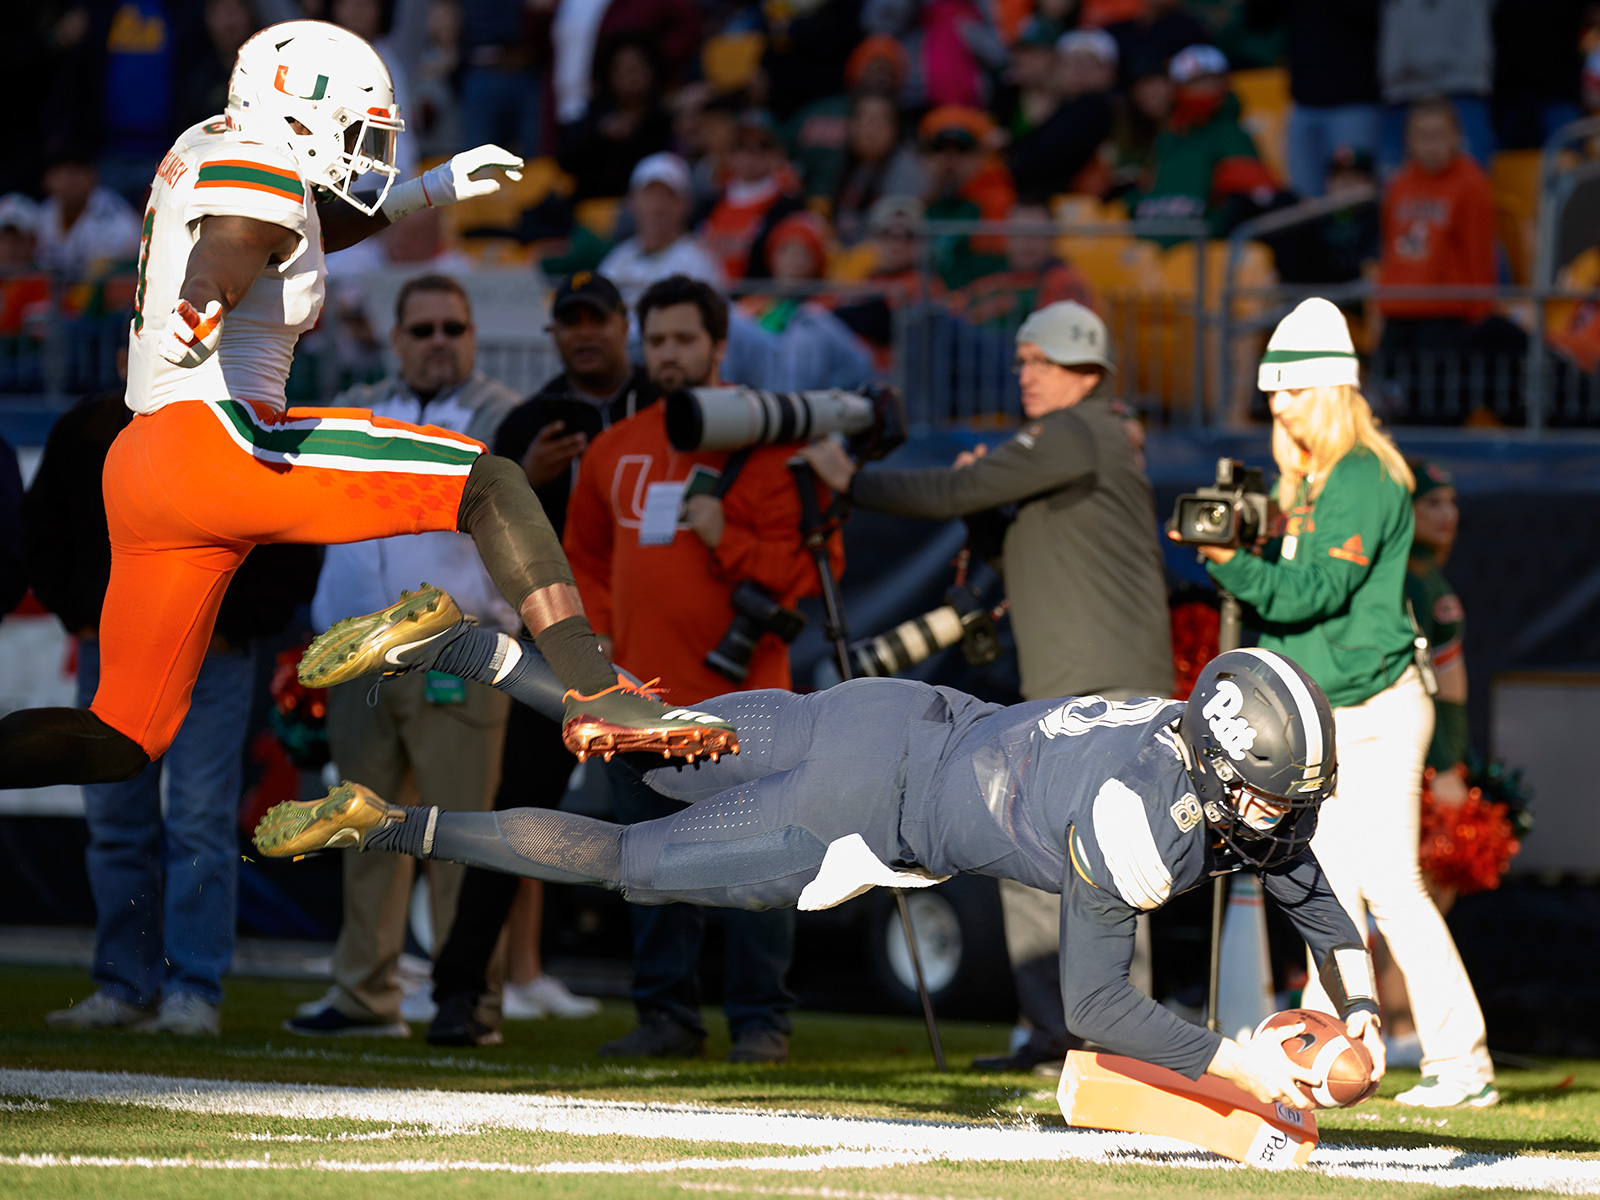 When the magic finally ran out for Miami, it ran out all at once. Pitt held the ball for 36:30 of game time, and a 22-yard scamper by freshman QB Kenny Pickett with under three minutes left officially knocked the Hurricanes from the ranks of the unbeaten on Black Friday. At 4–7, the Panthers were playing for nothing but pride—and the chance to extend the program's pattern of upsetting No. 2 teams with their eyes on the national title, as West Virginia learned in 2007.